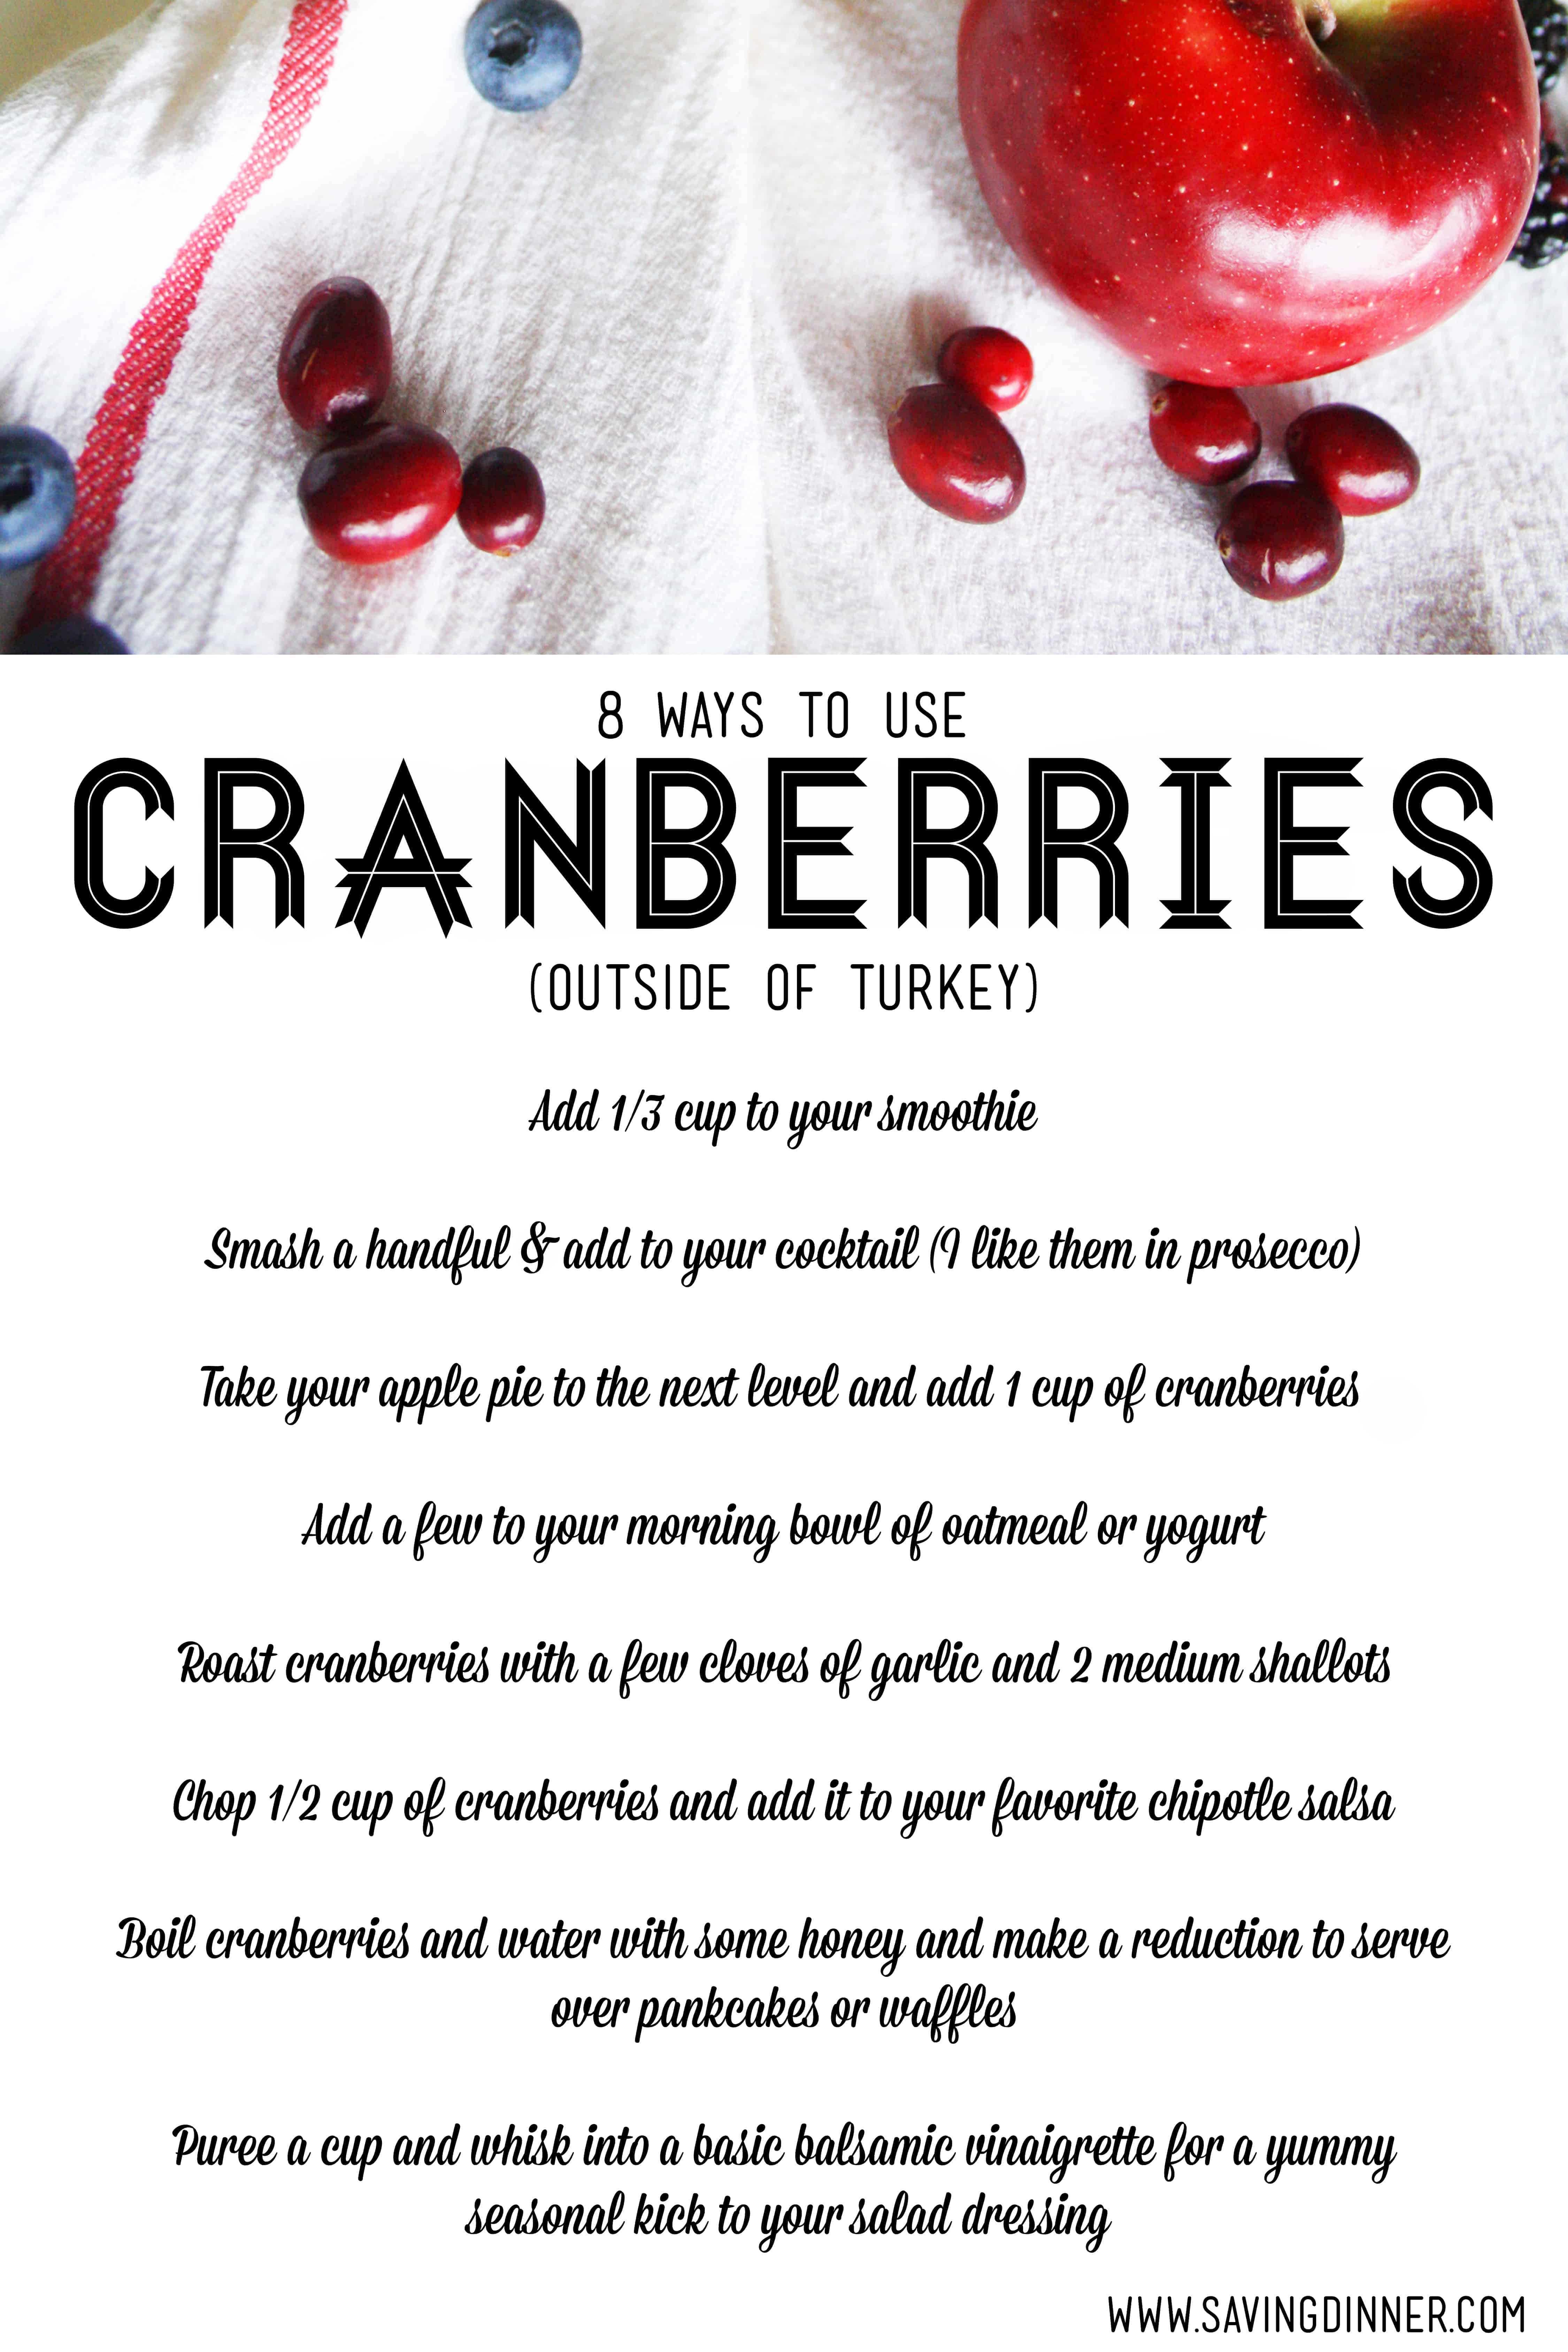 8 surprising uses for cranberries